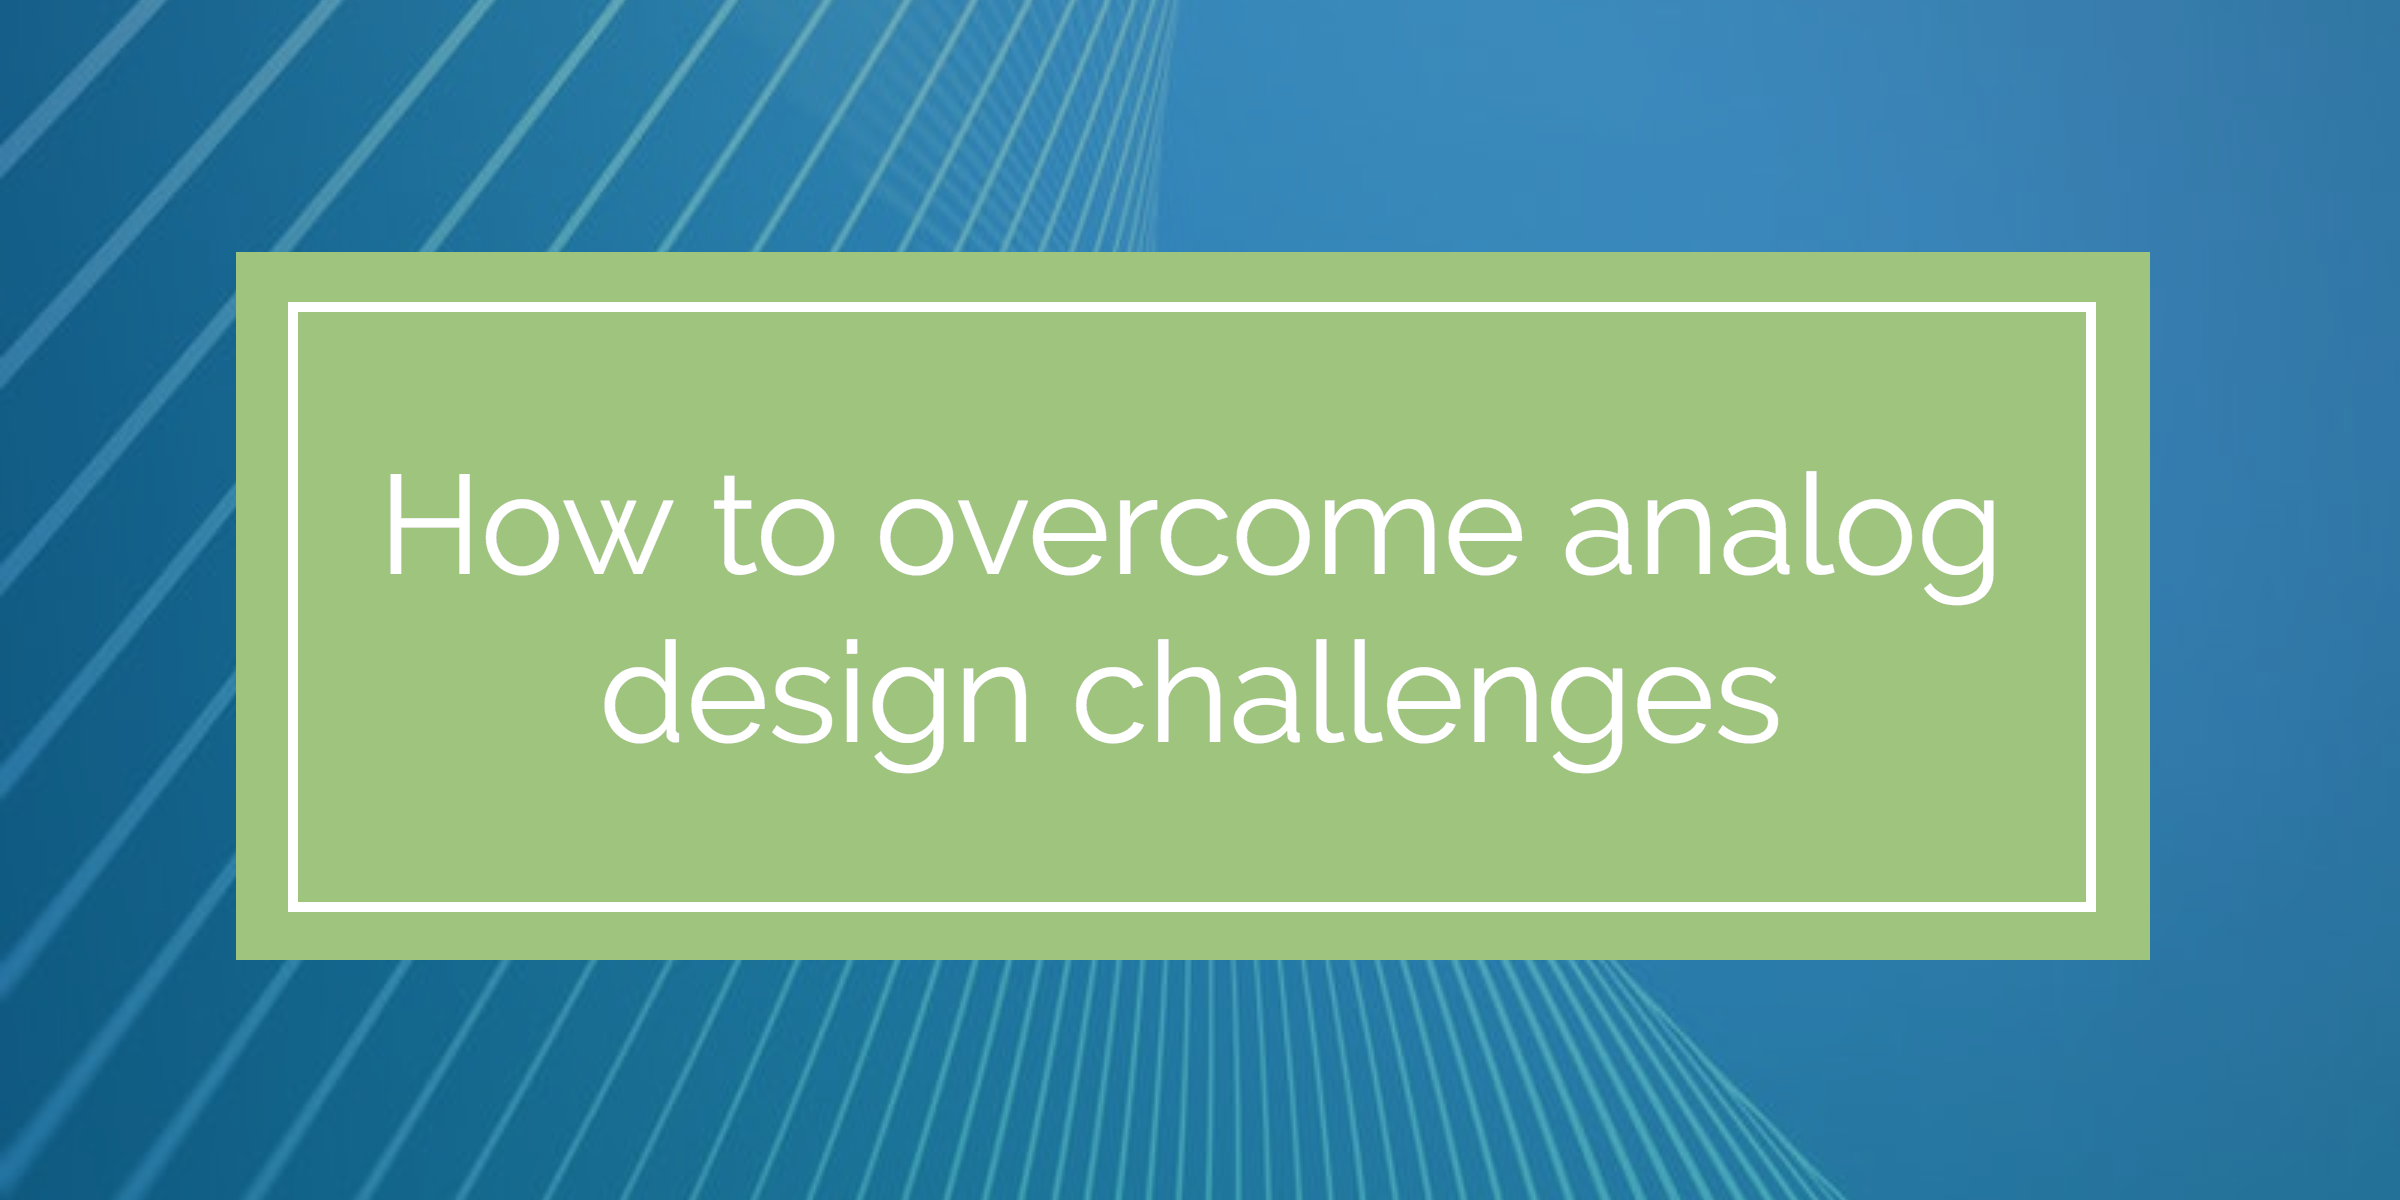 how-to-overcome-analog-design-challenges (1)